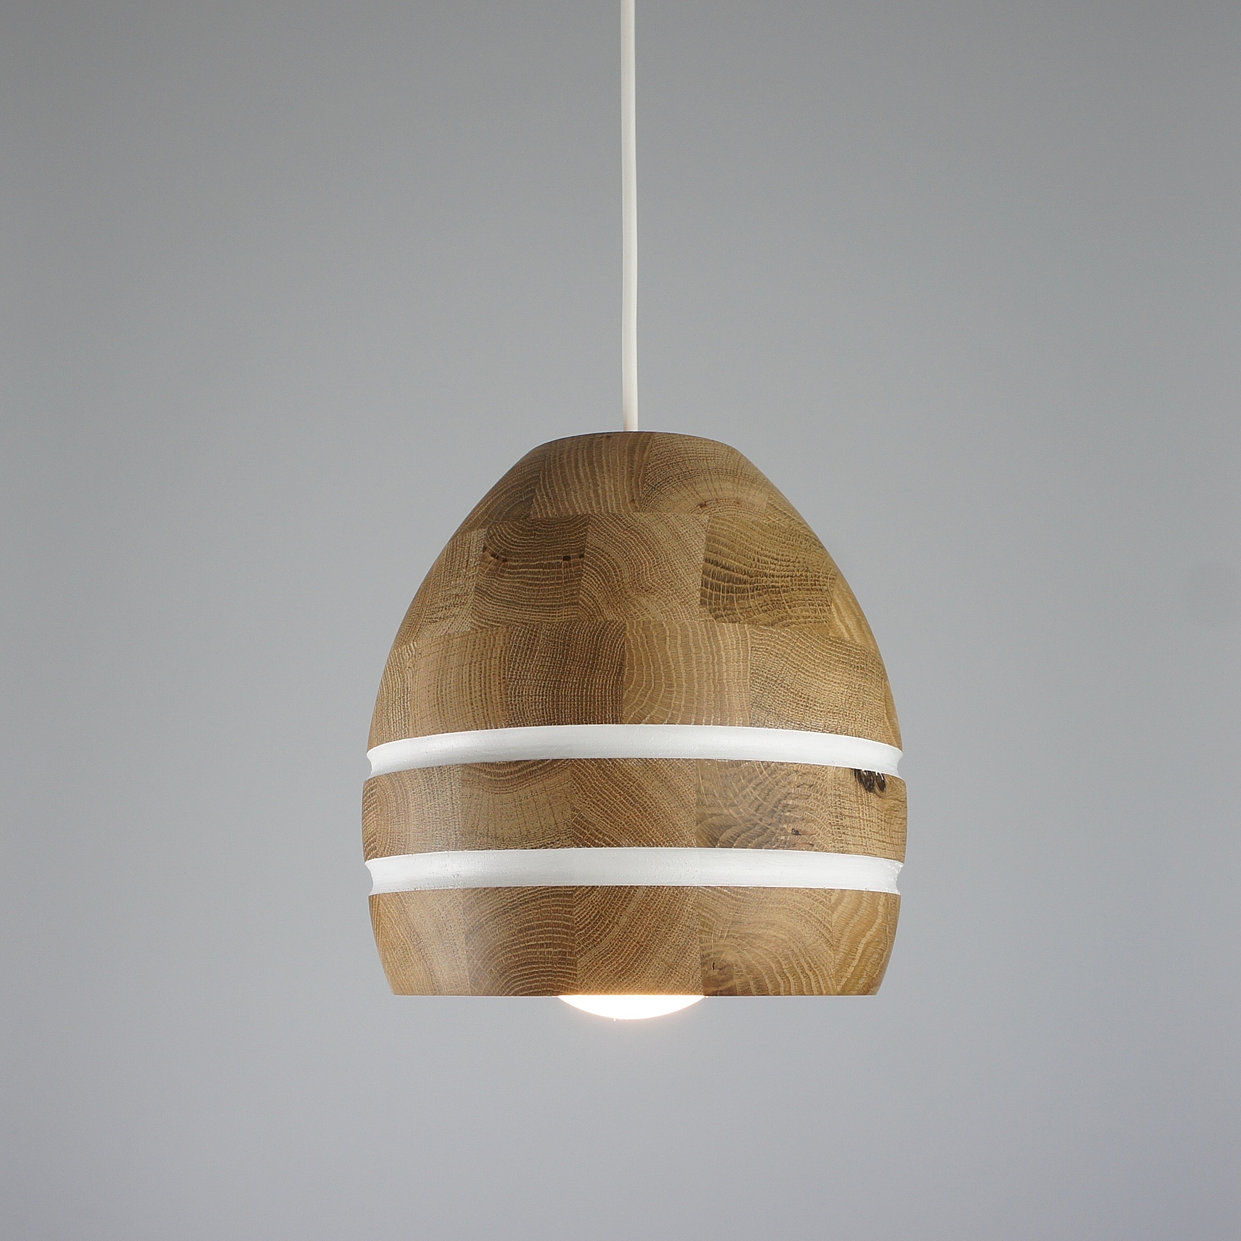 Wooden Lighting Pendants Obe And Co Design Ltd Uk Designer Lighting